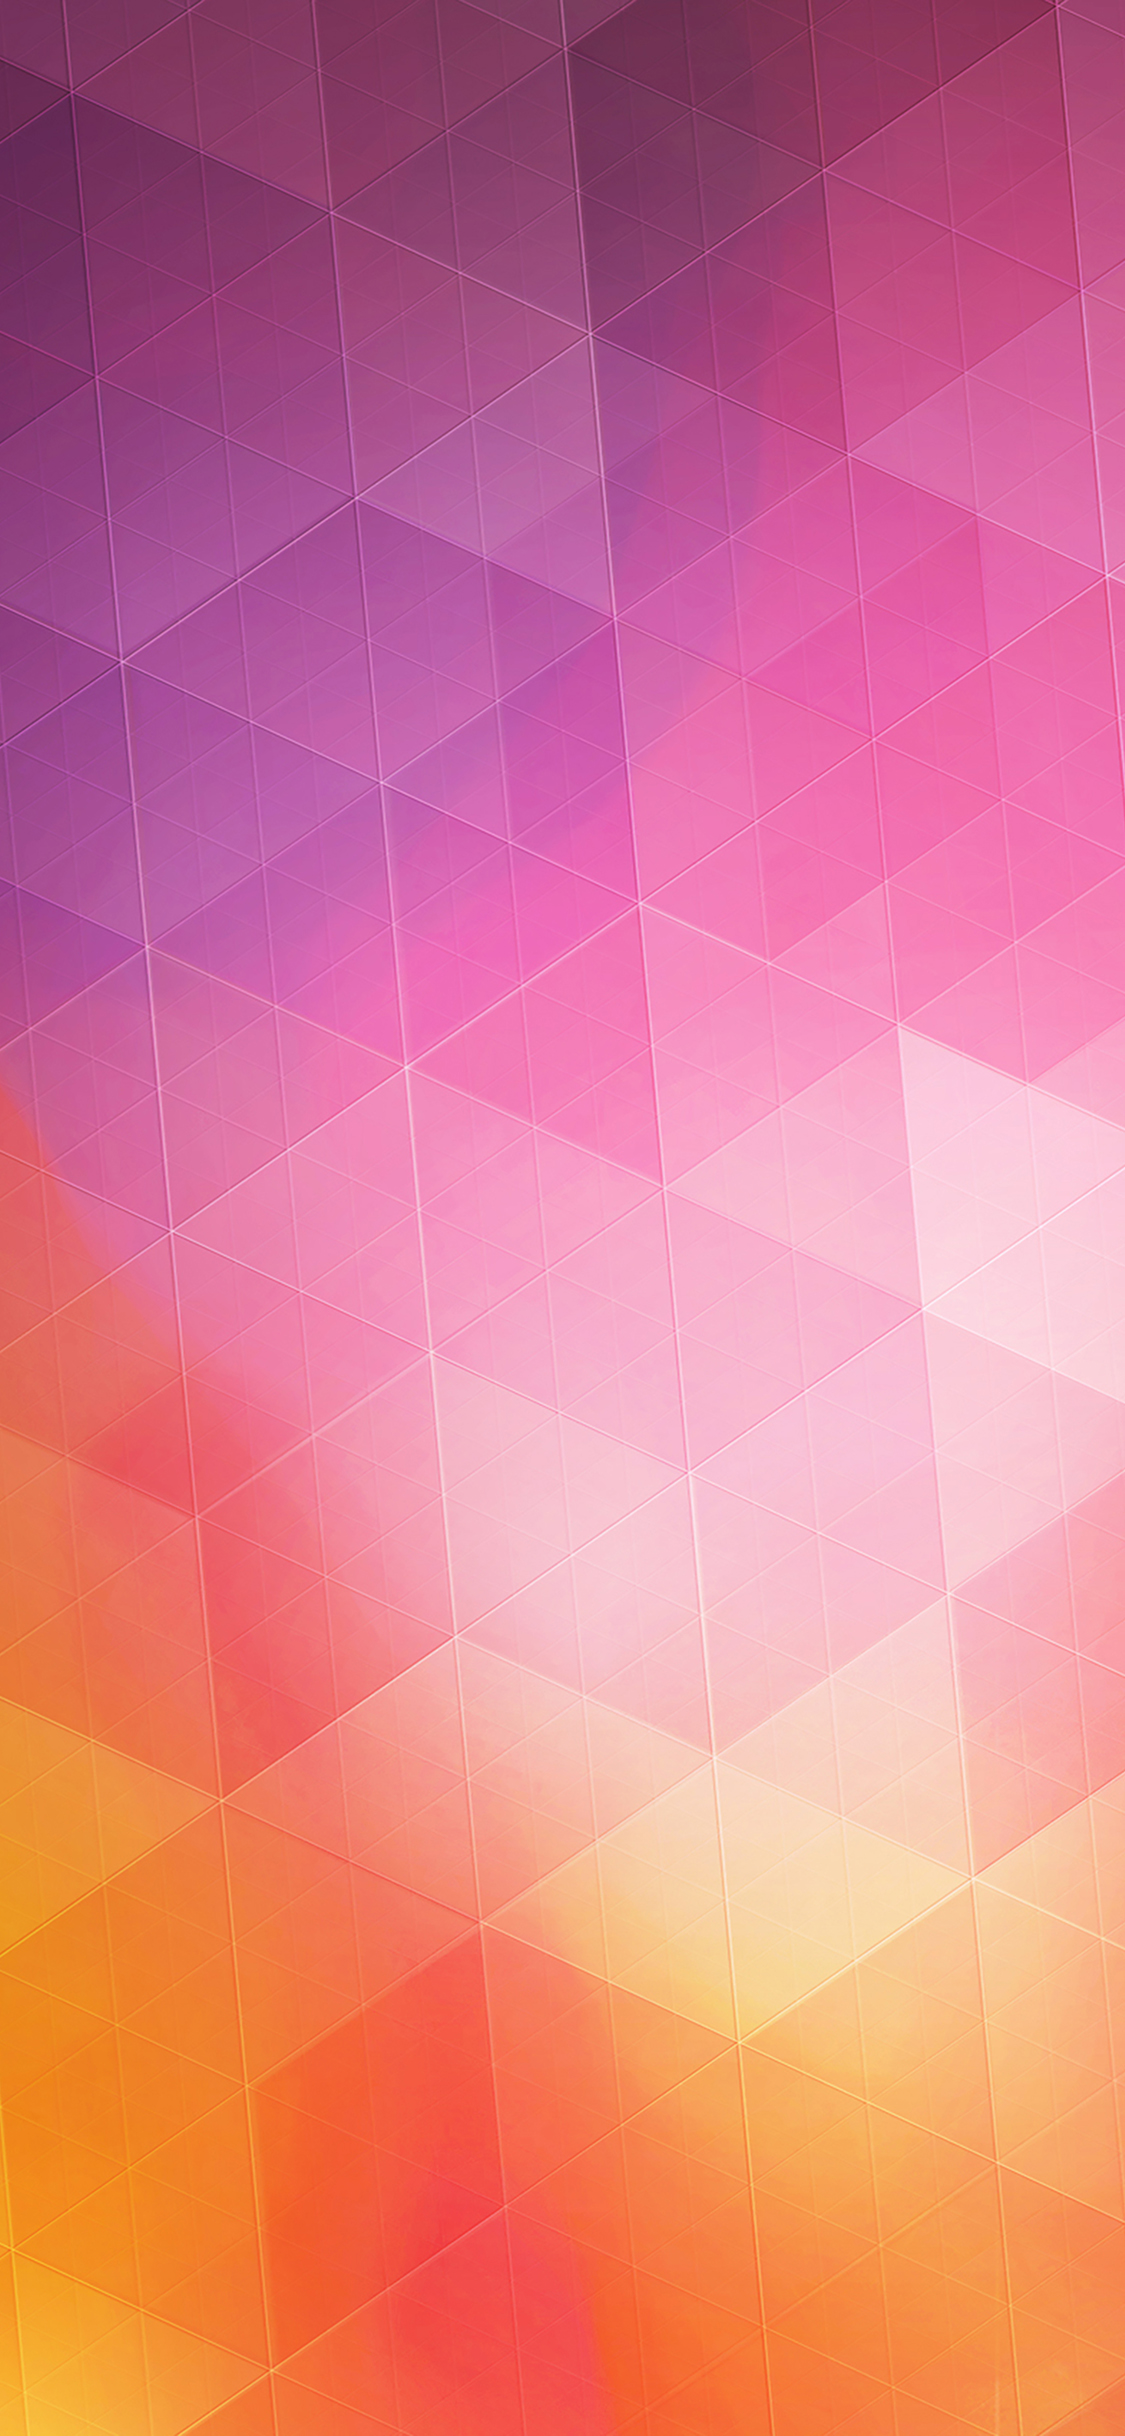 iPhoneXpapers.com-Apple-iPhone-wallpaper-vb70-wallpaper-android-purple-wall-pattern